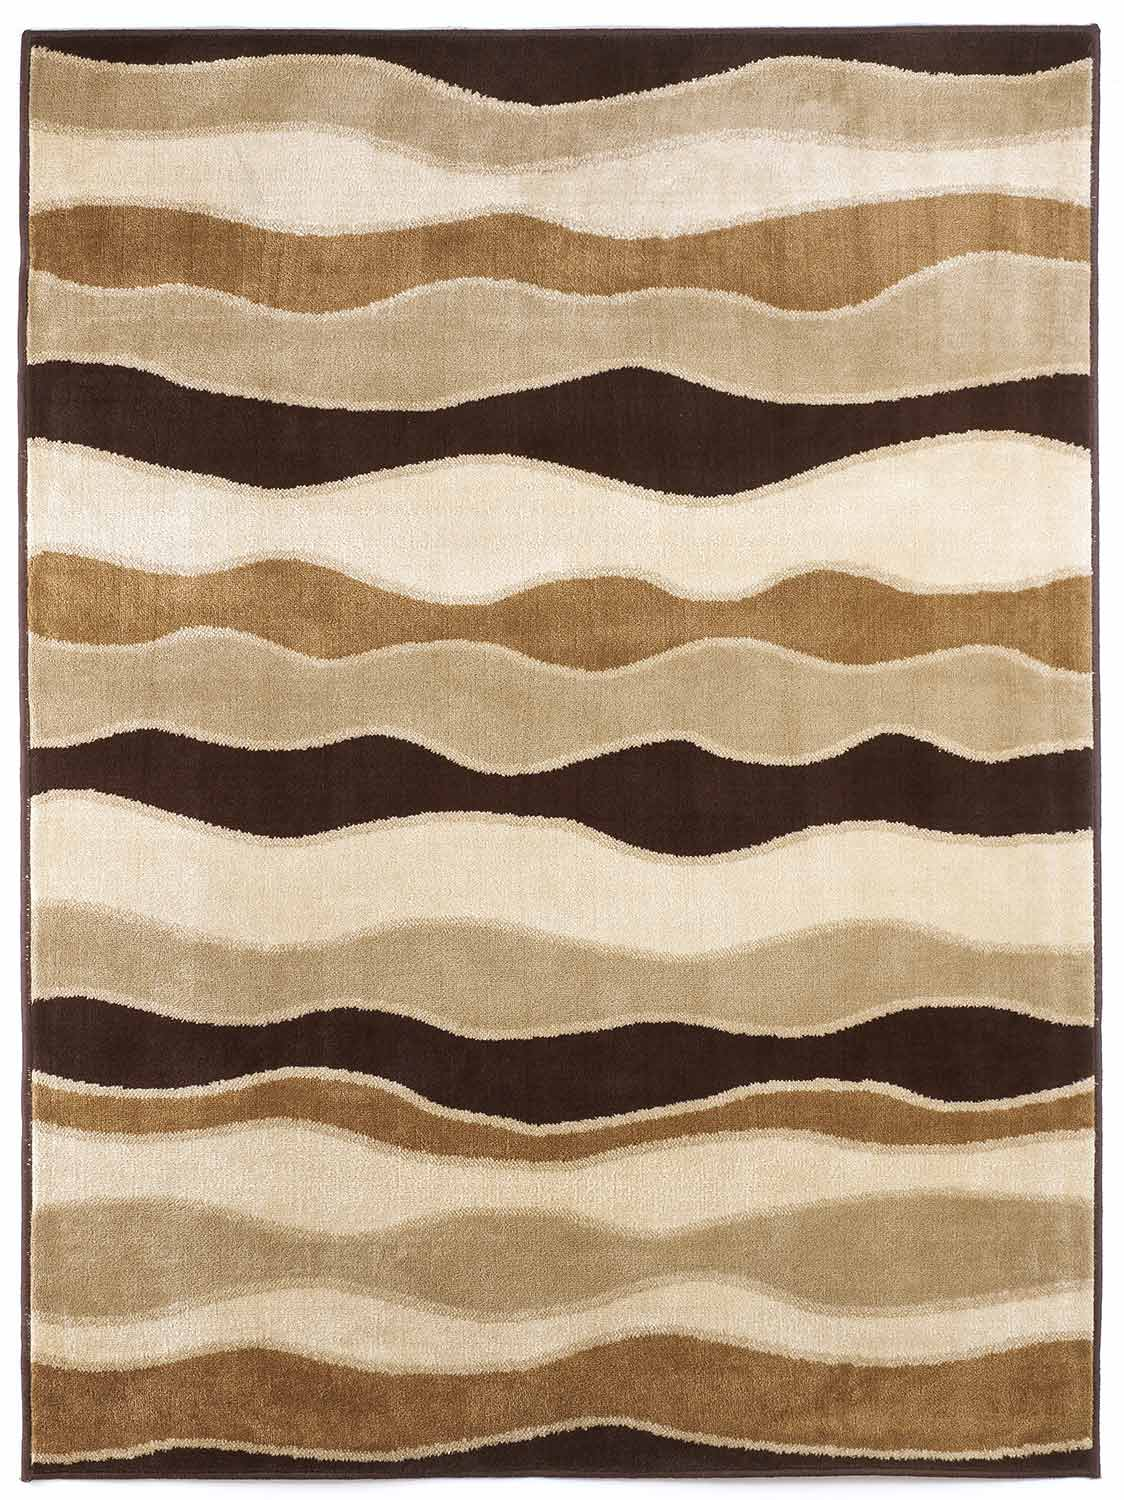 Ashley Frequency Area Rug - Toffee